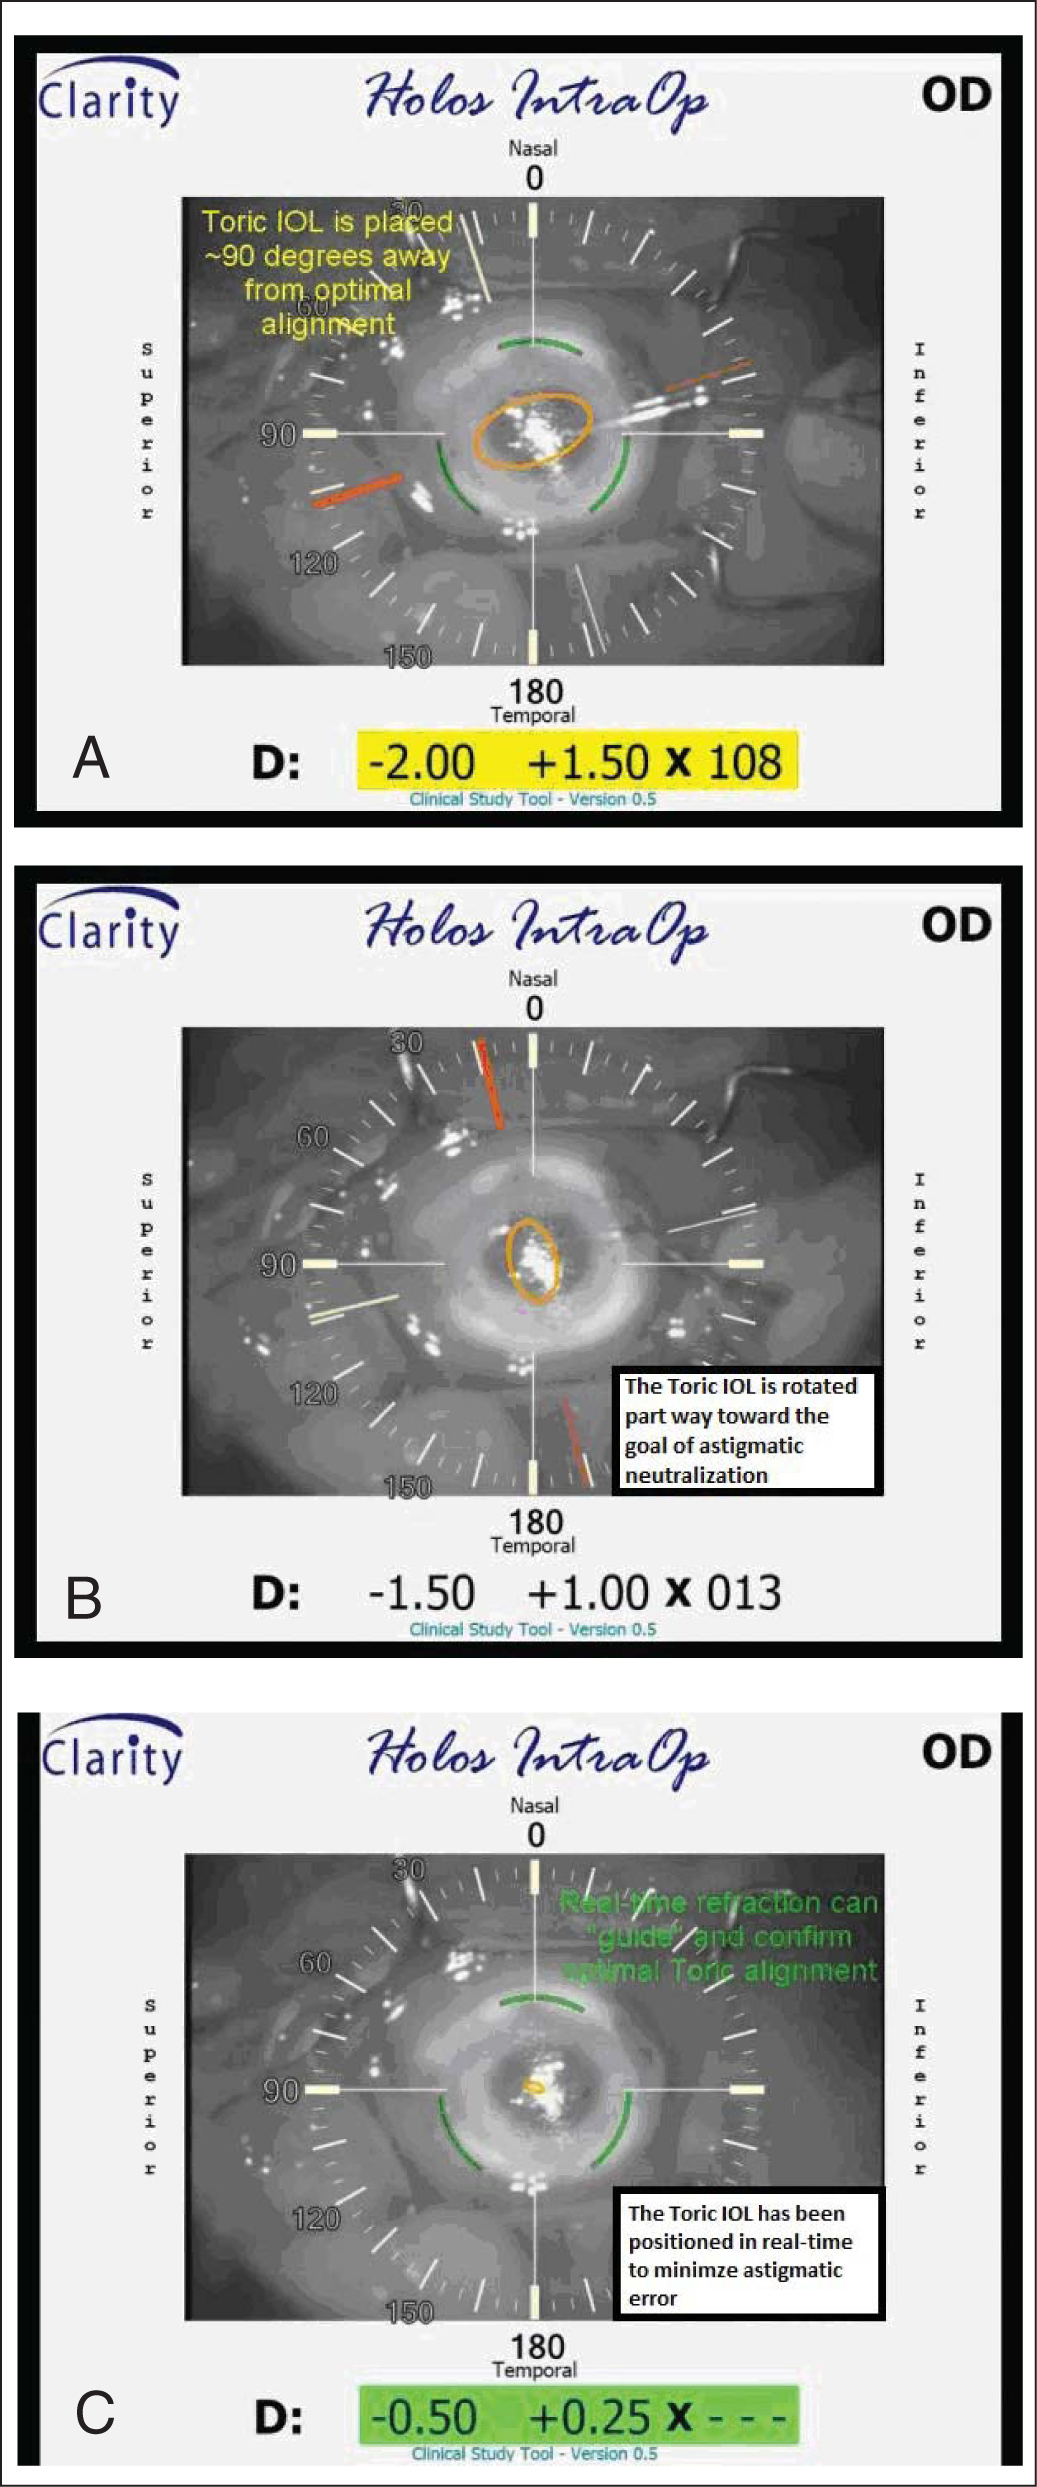 Gradually improving refraction detected by HOLOS (Clarity Medical Systems, Inc., Pleasanton, CA) during the rotational alignment of a toric intraocular lens from (A) approximately 90° away to (B) midway improvement to (C) its final optimal alignment with astigmatic neutralization.